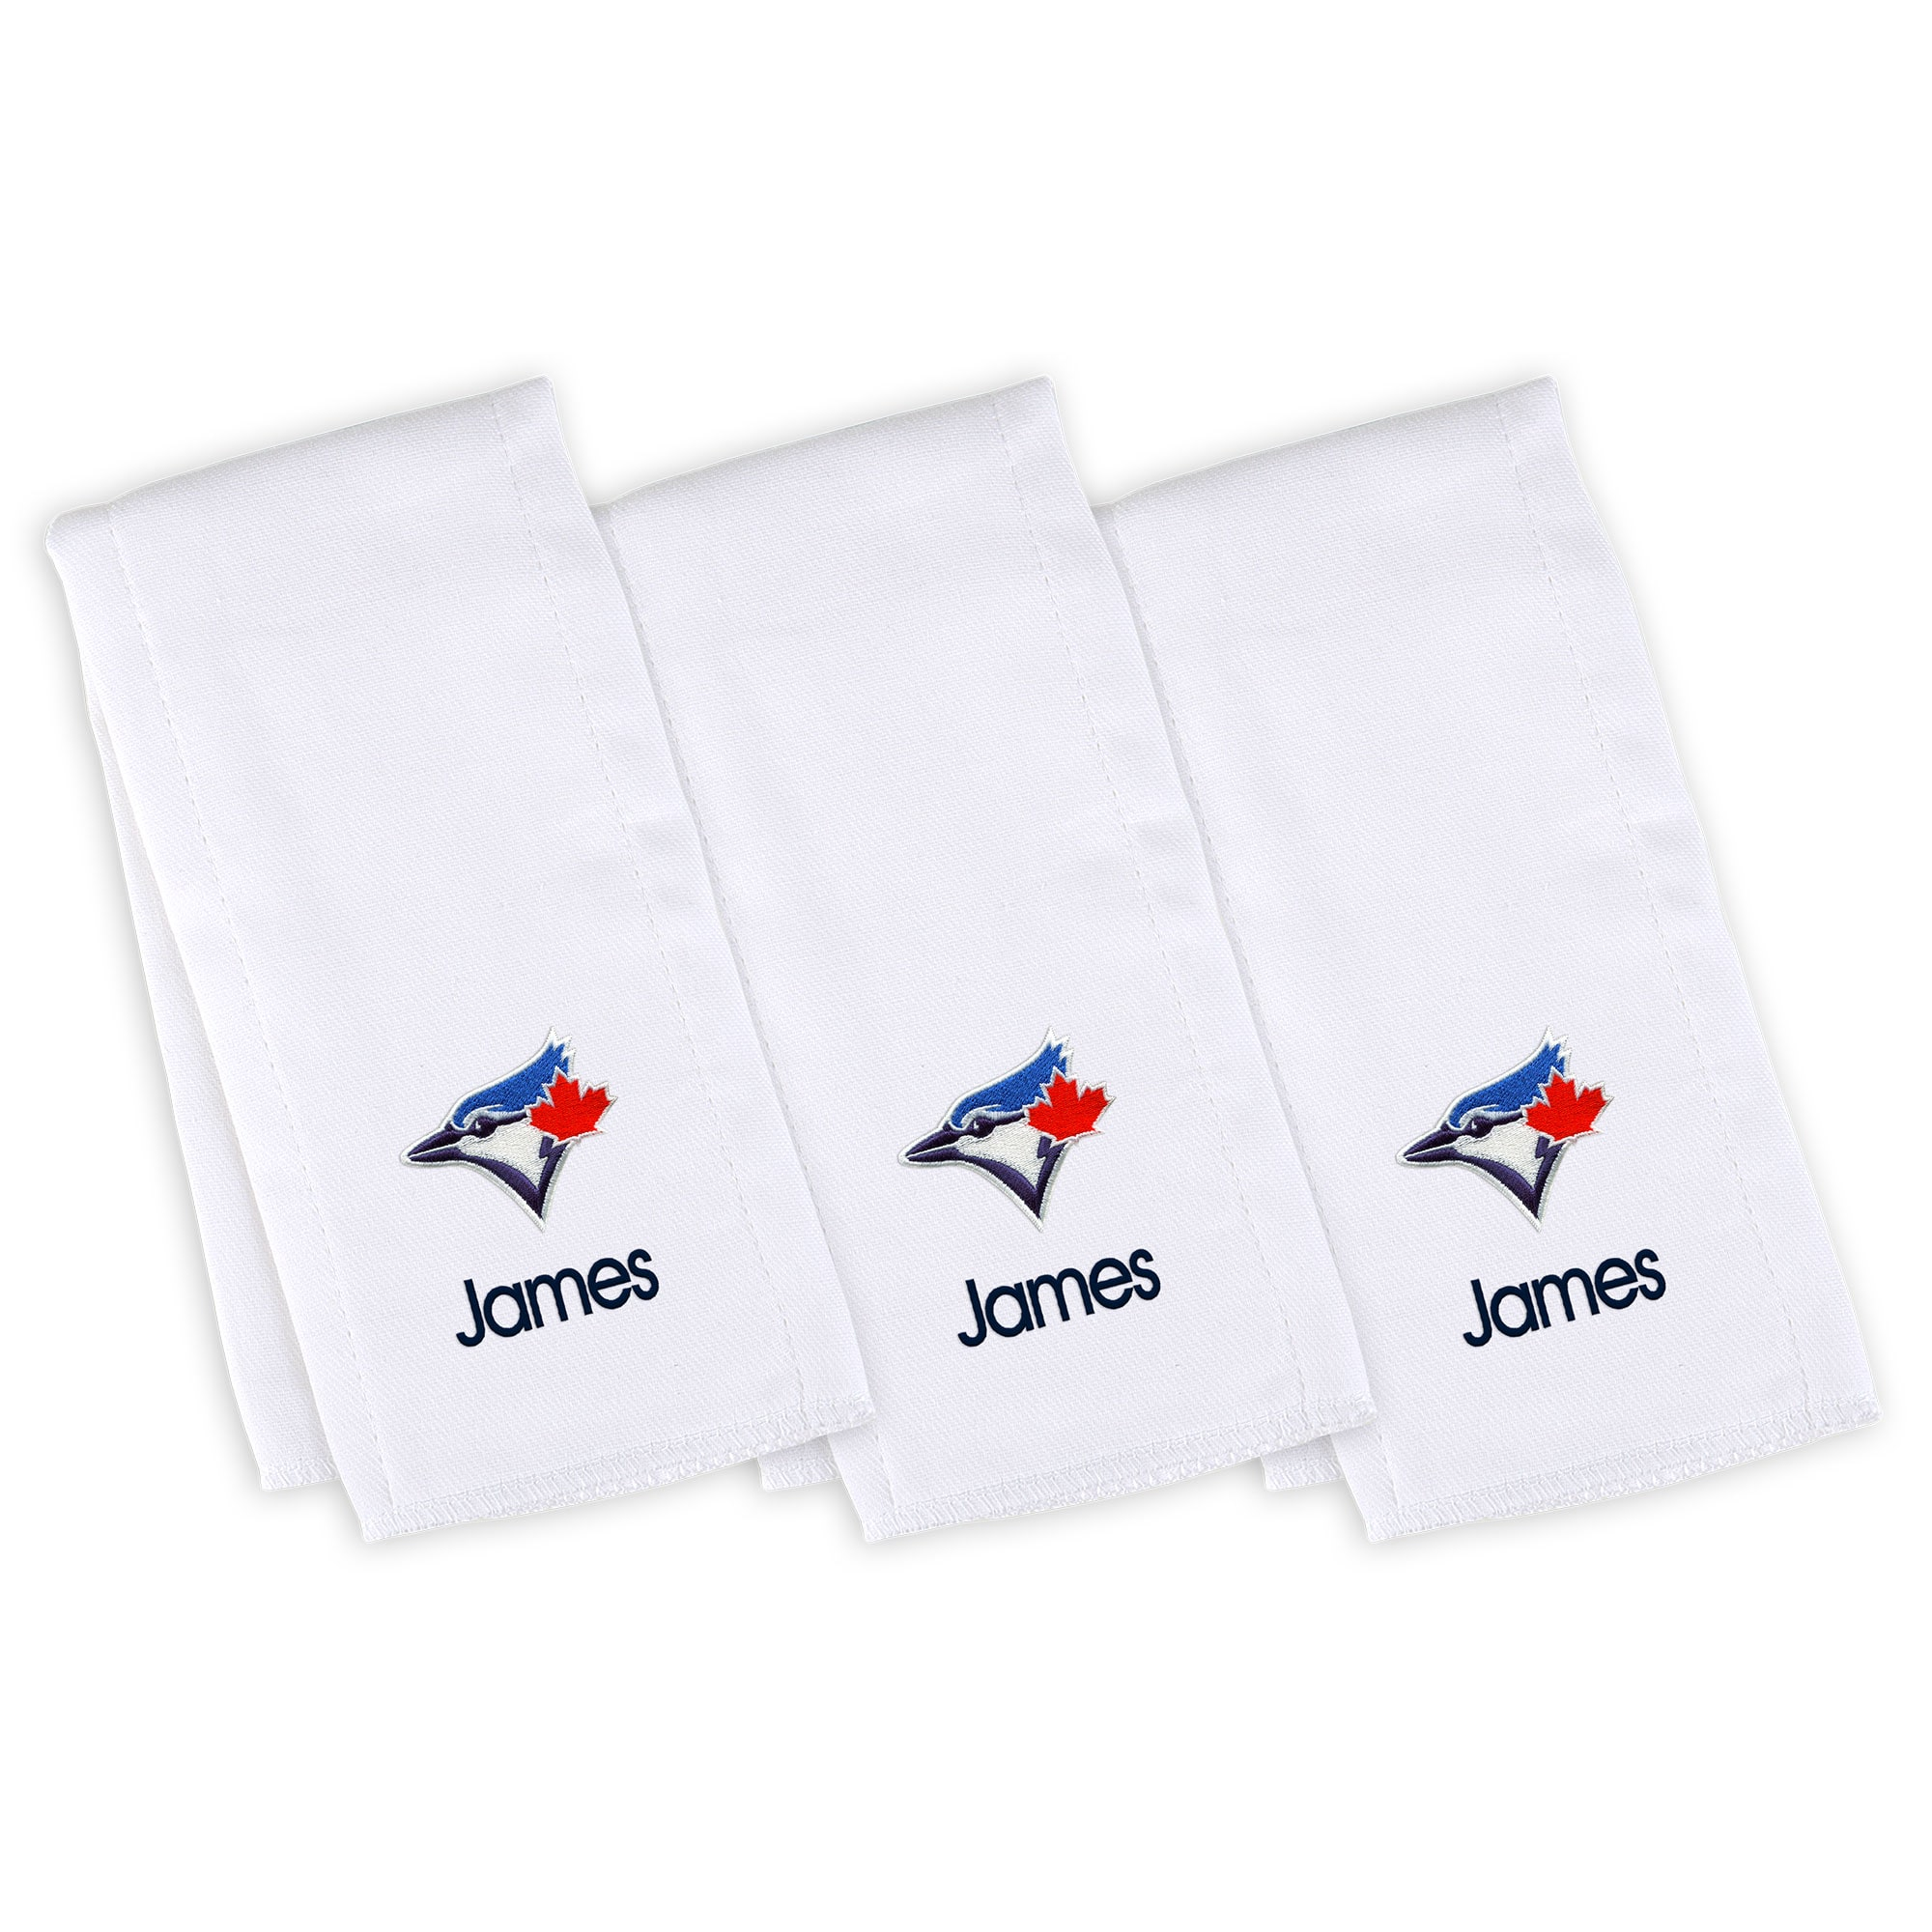 Toronto Blue Jays Infant Personalized Burp Cloth 3-Pack - White